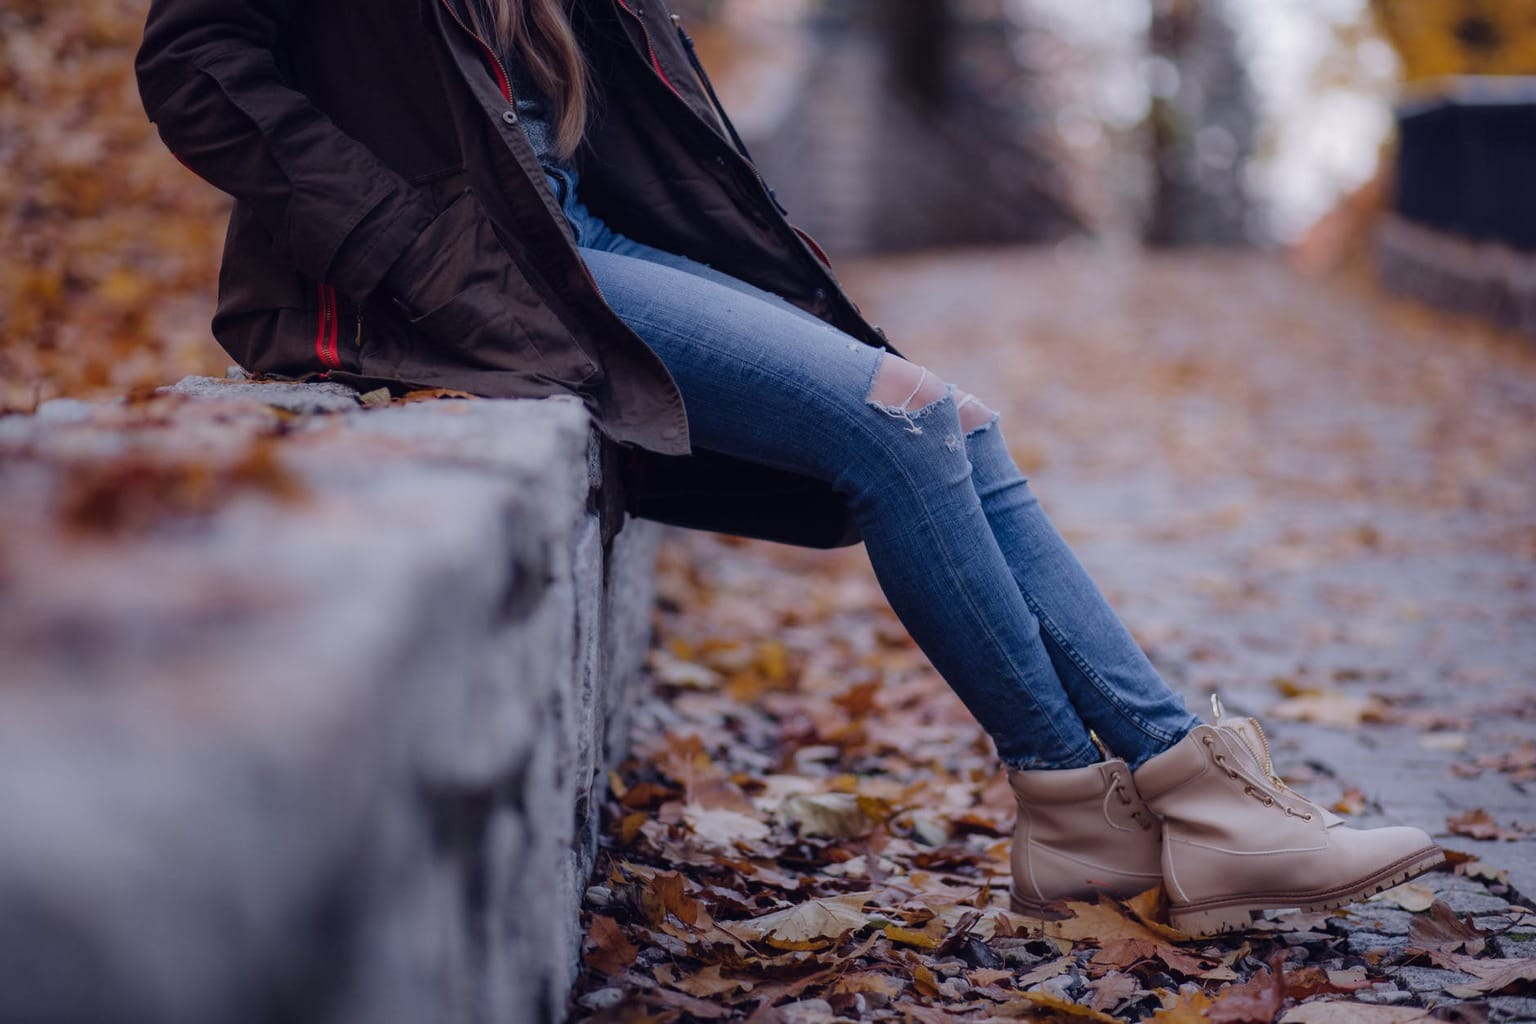 Woman sitting on a ledge in fall wearing blue jeans, boots, and a black jacket